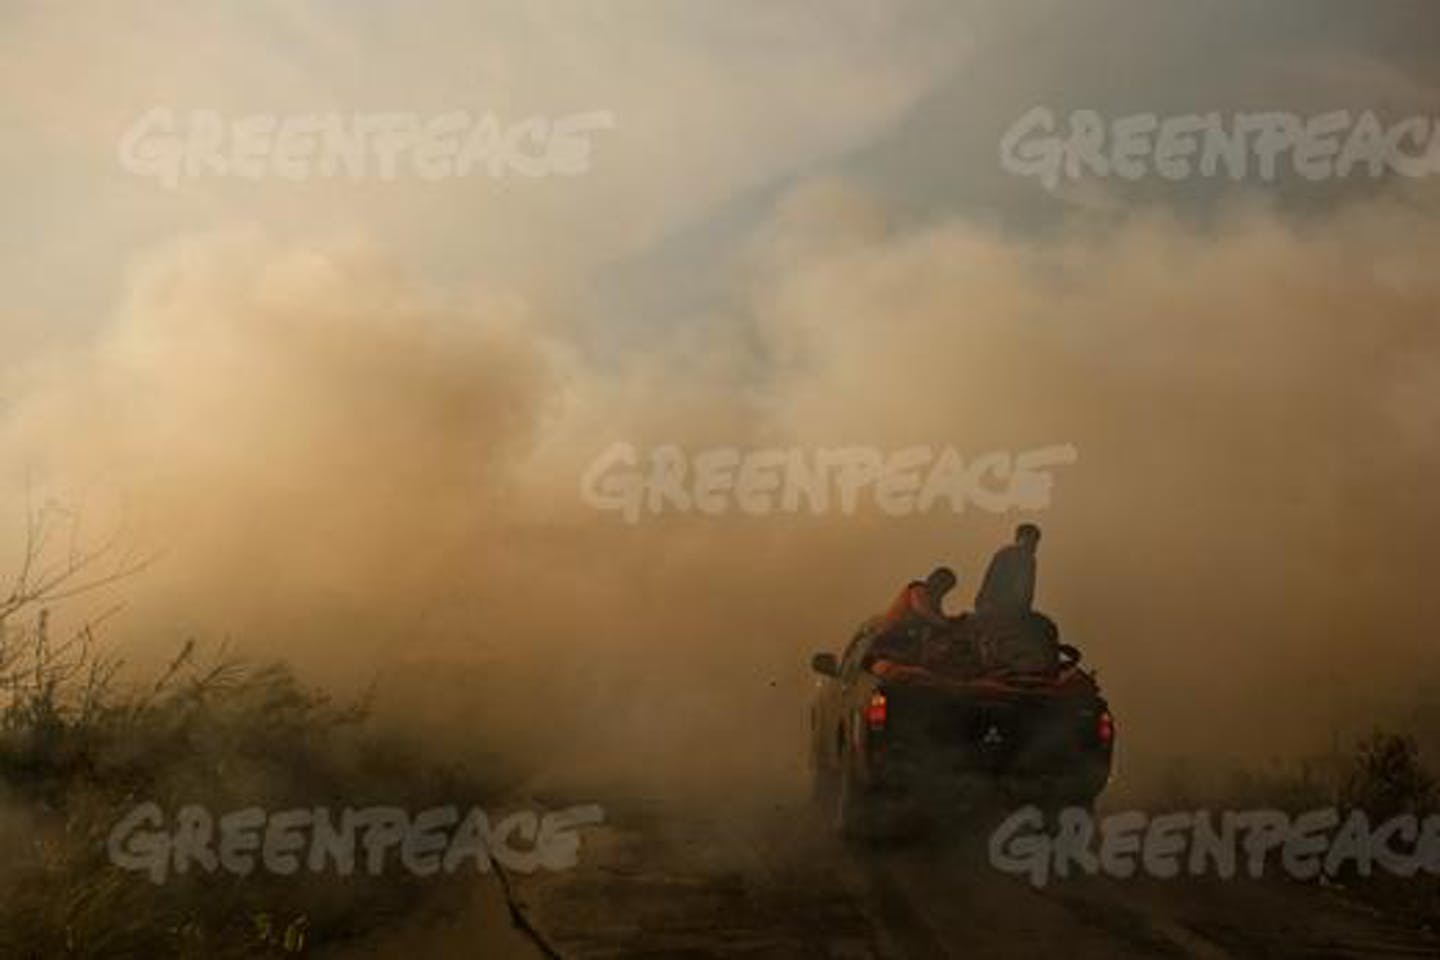 Greenpeace Indonesia forest fire